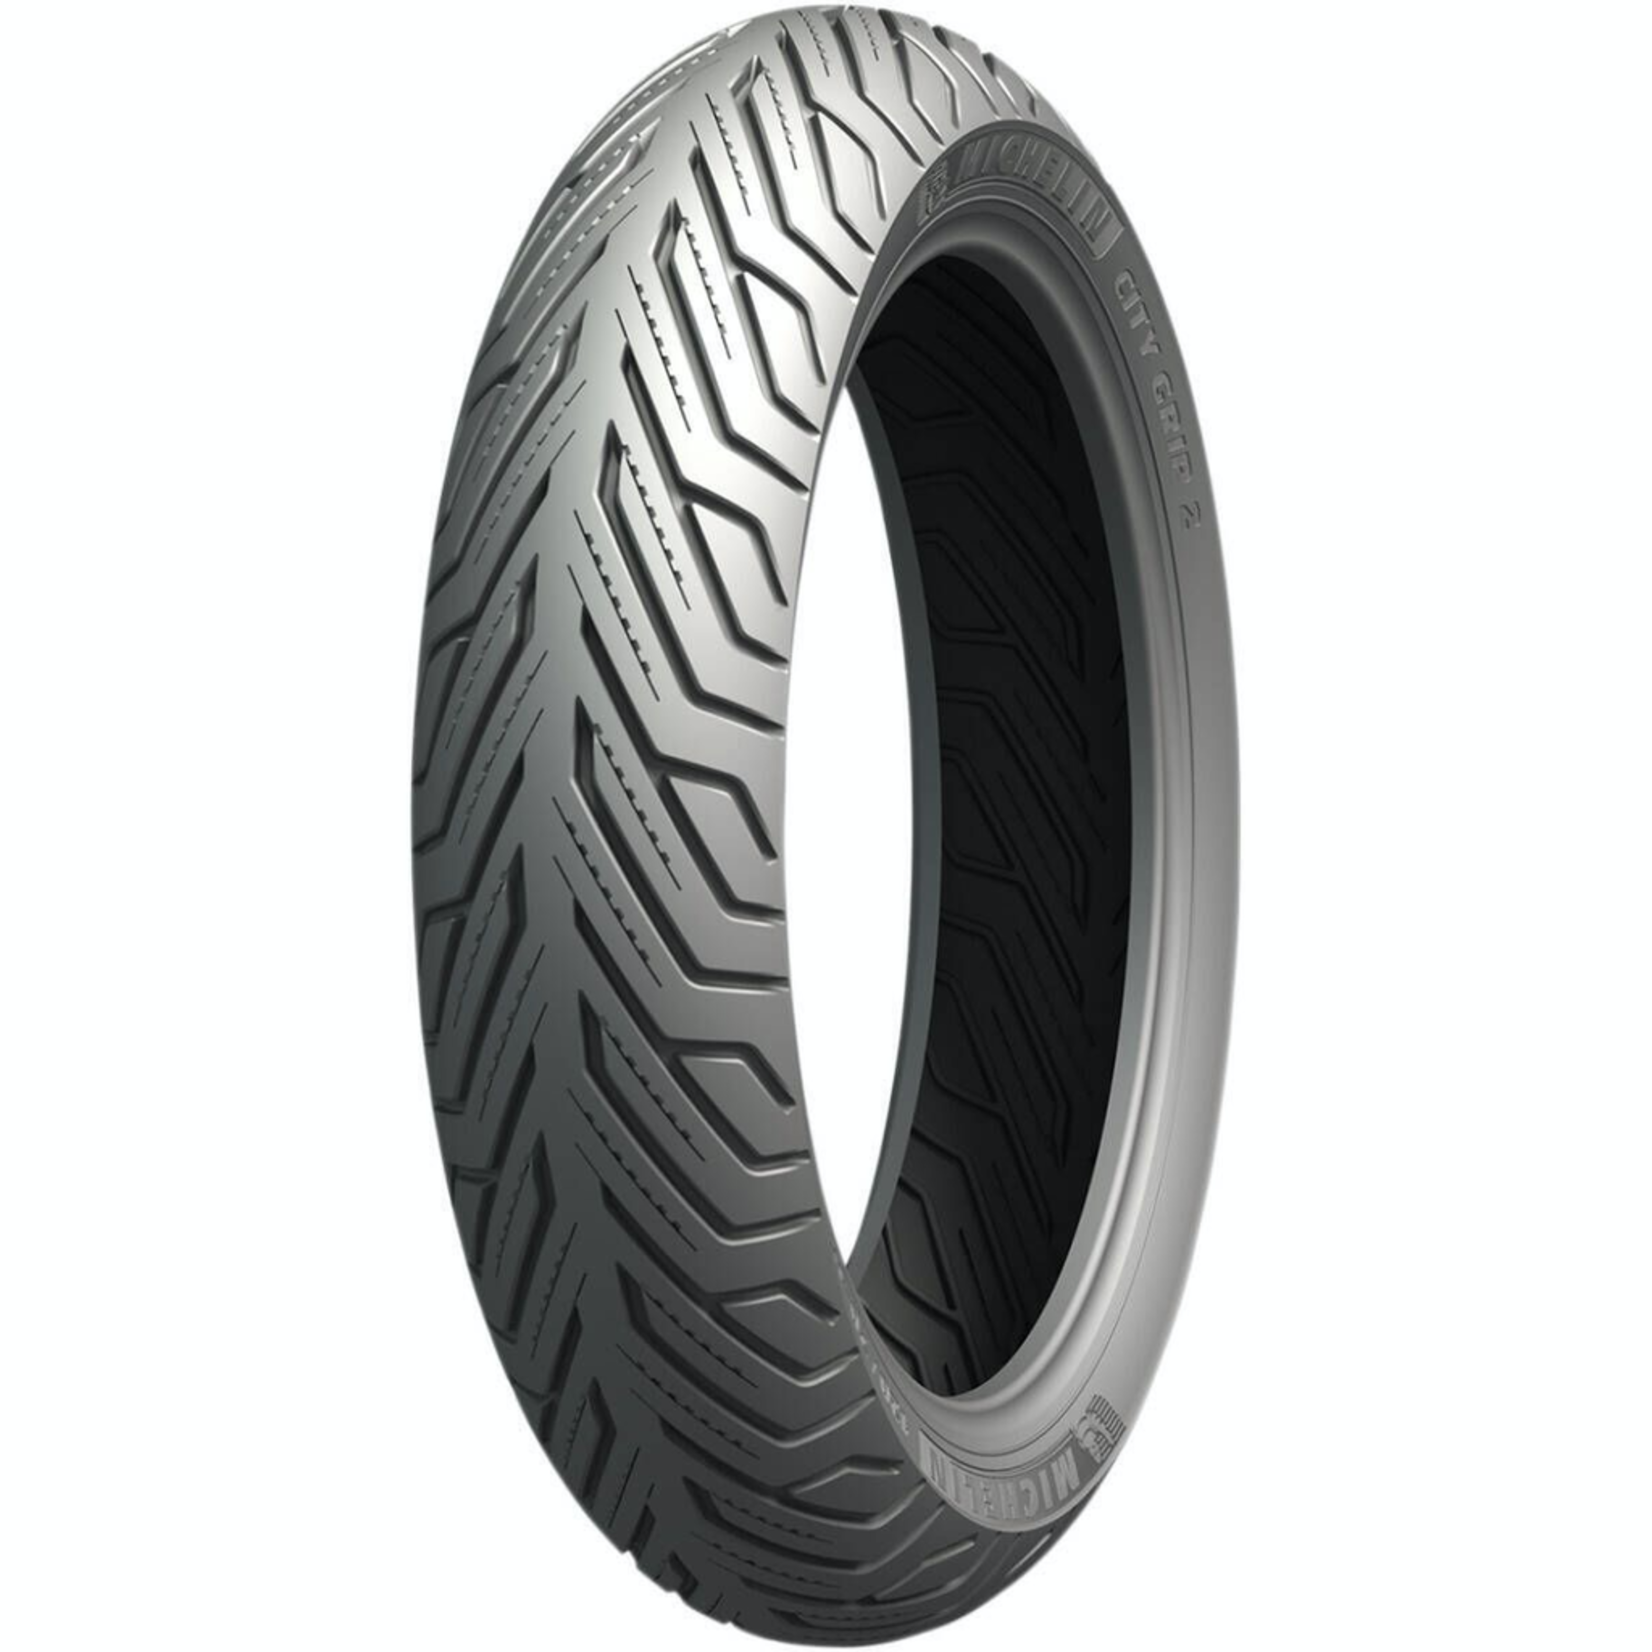 "Parts Tire, 110/80-14"" Michelin City Grip2"